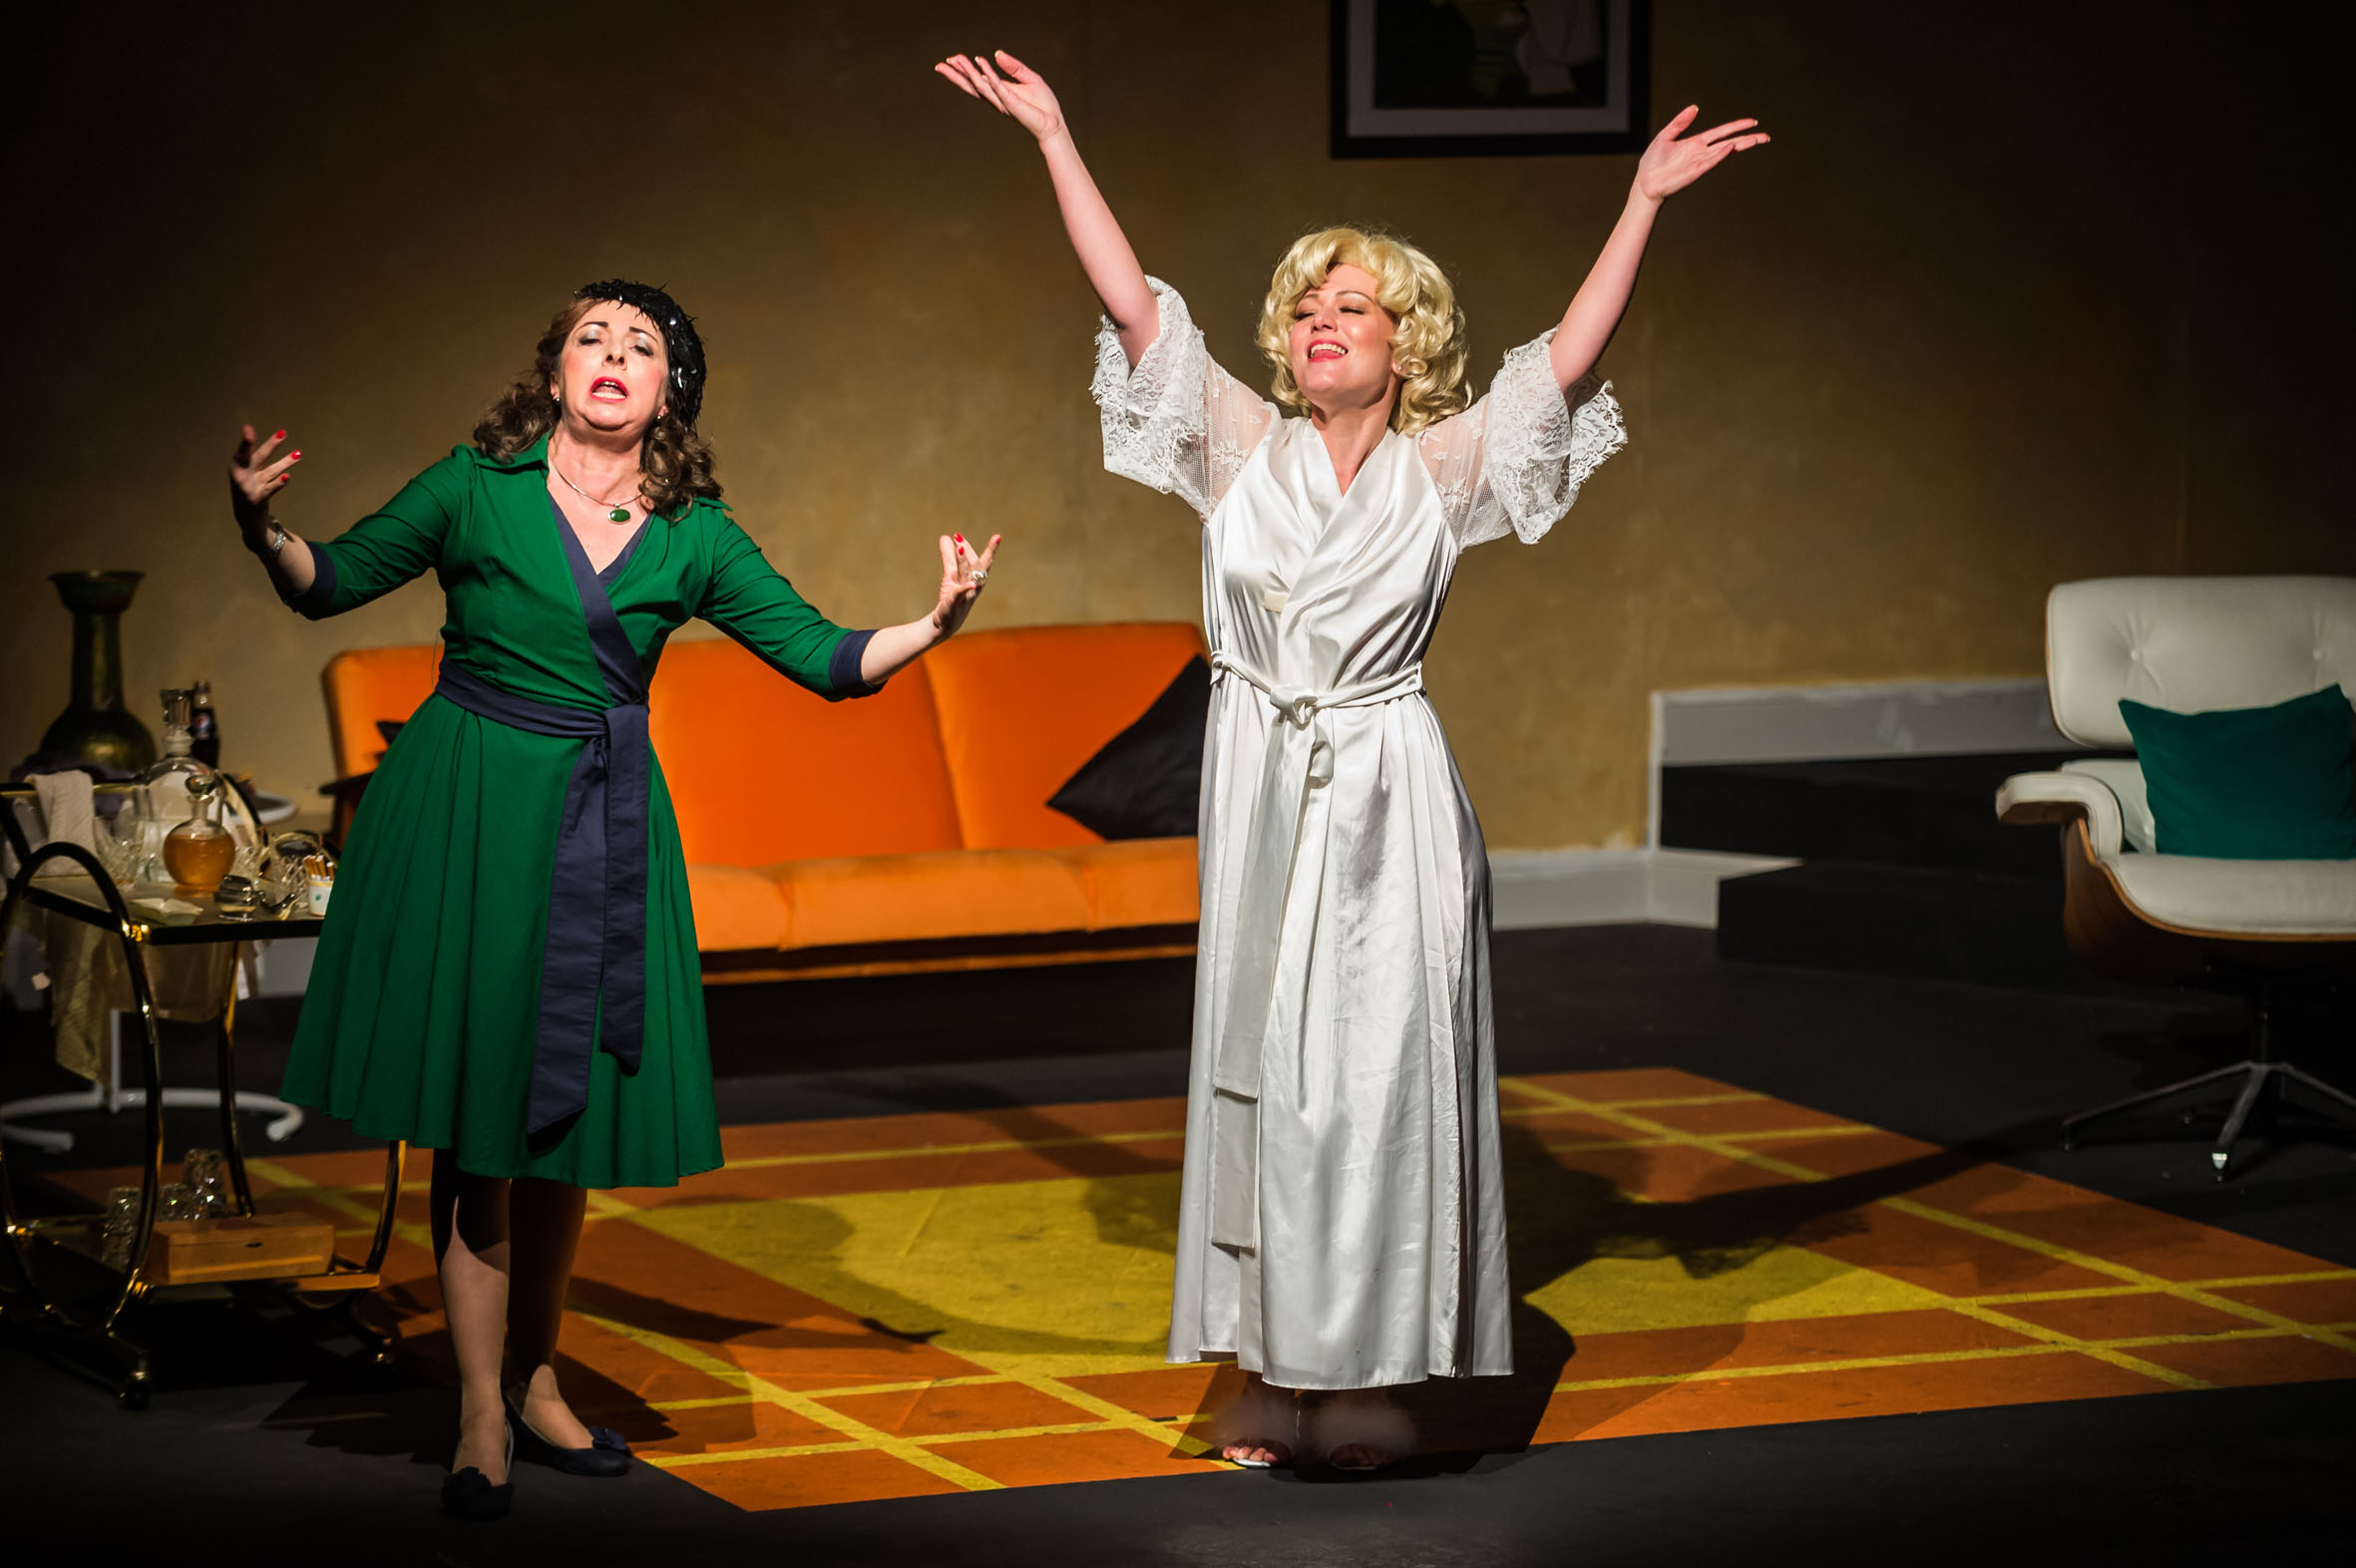 Dark Voyager - An unkindness of aging for Bette and Joan in this stylish offering.